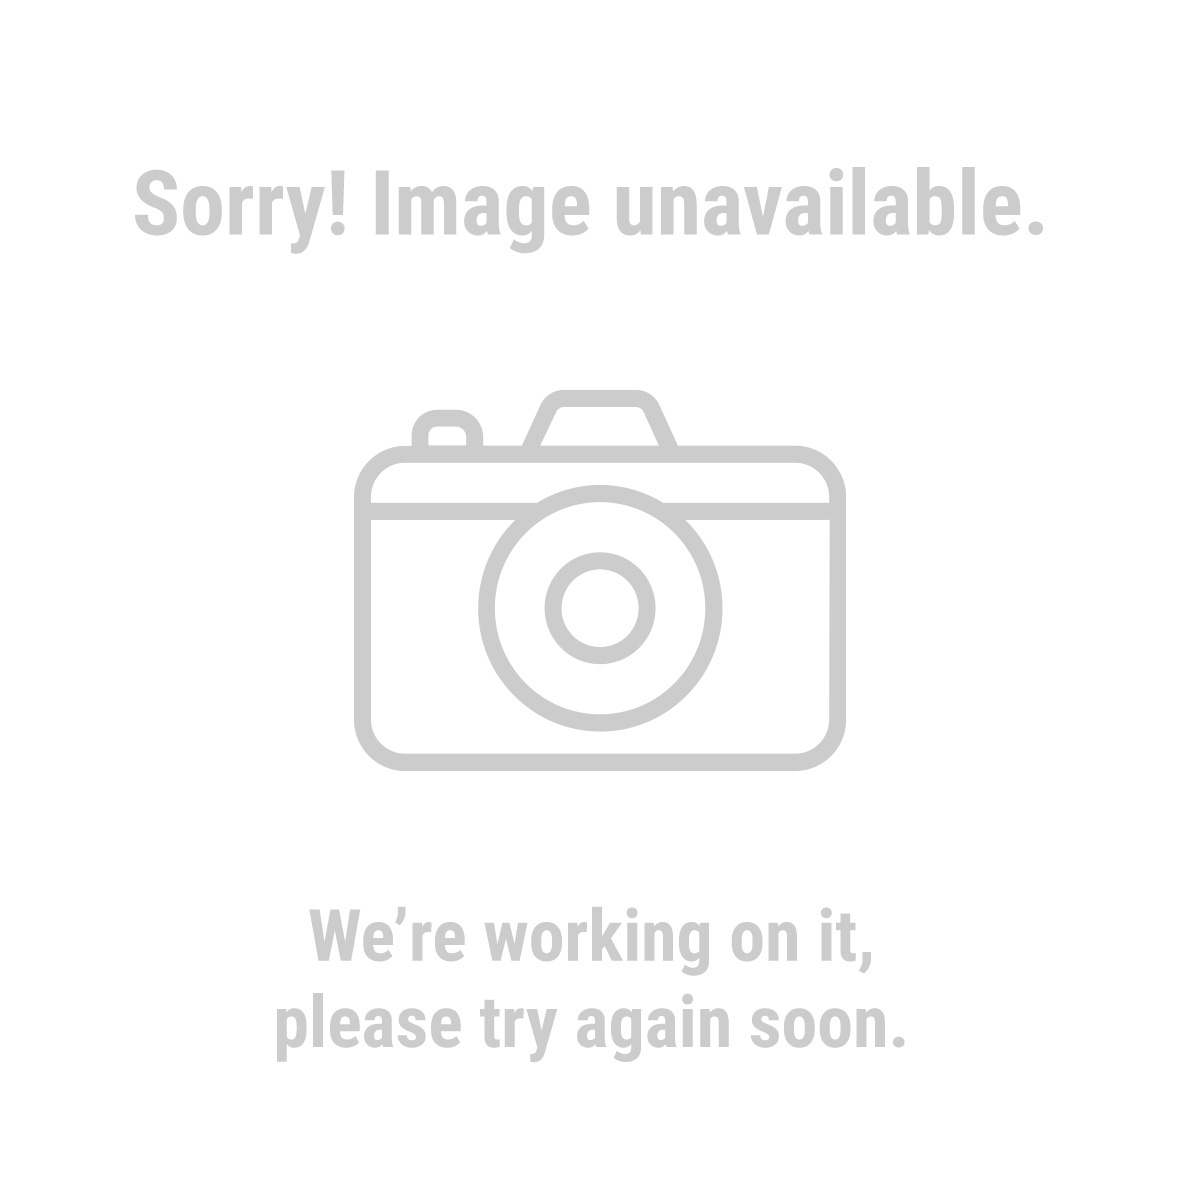 Vanguard 62947 100 ft. x 12 Gauge Outdoor Extension Cord